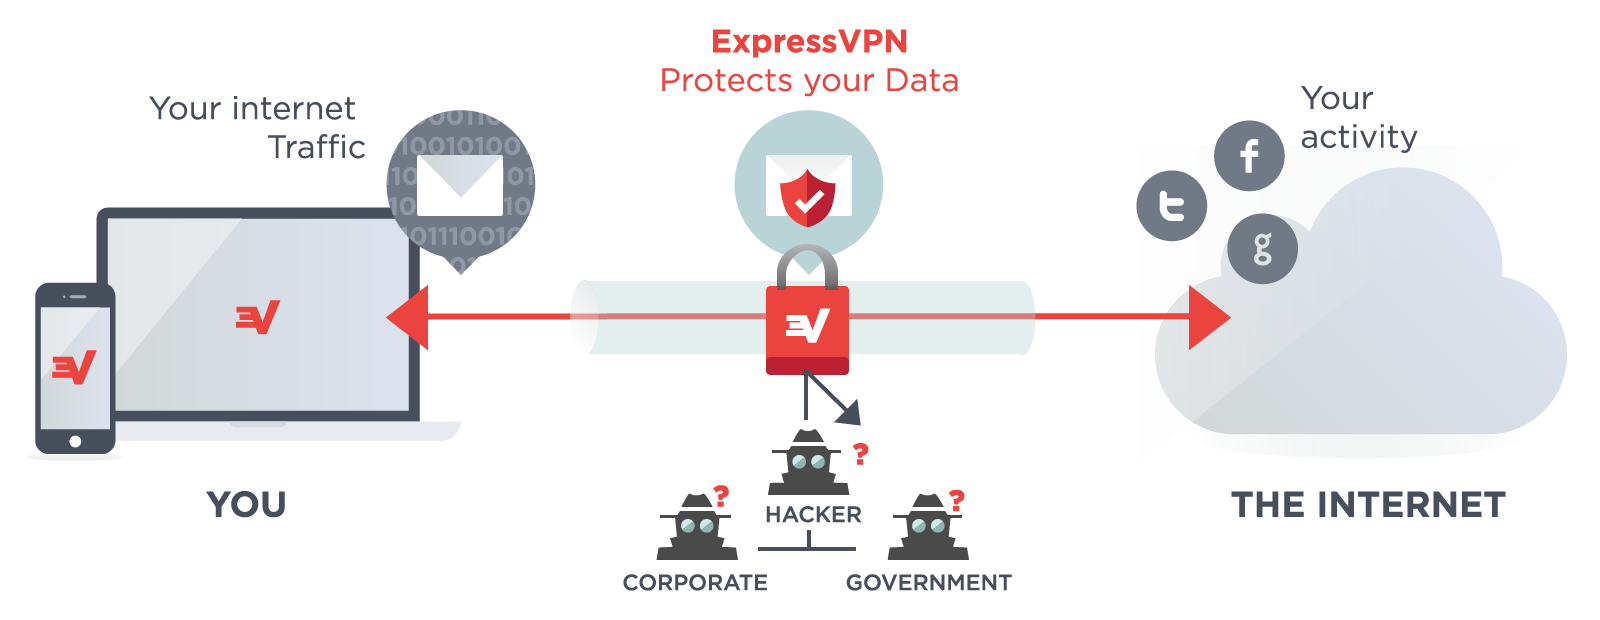 622ed640e7deff443971ad0599f77cfe - What Is A Vpn And What Is It Used For